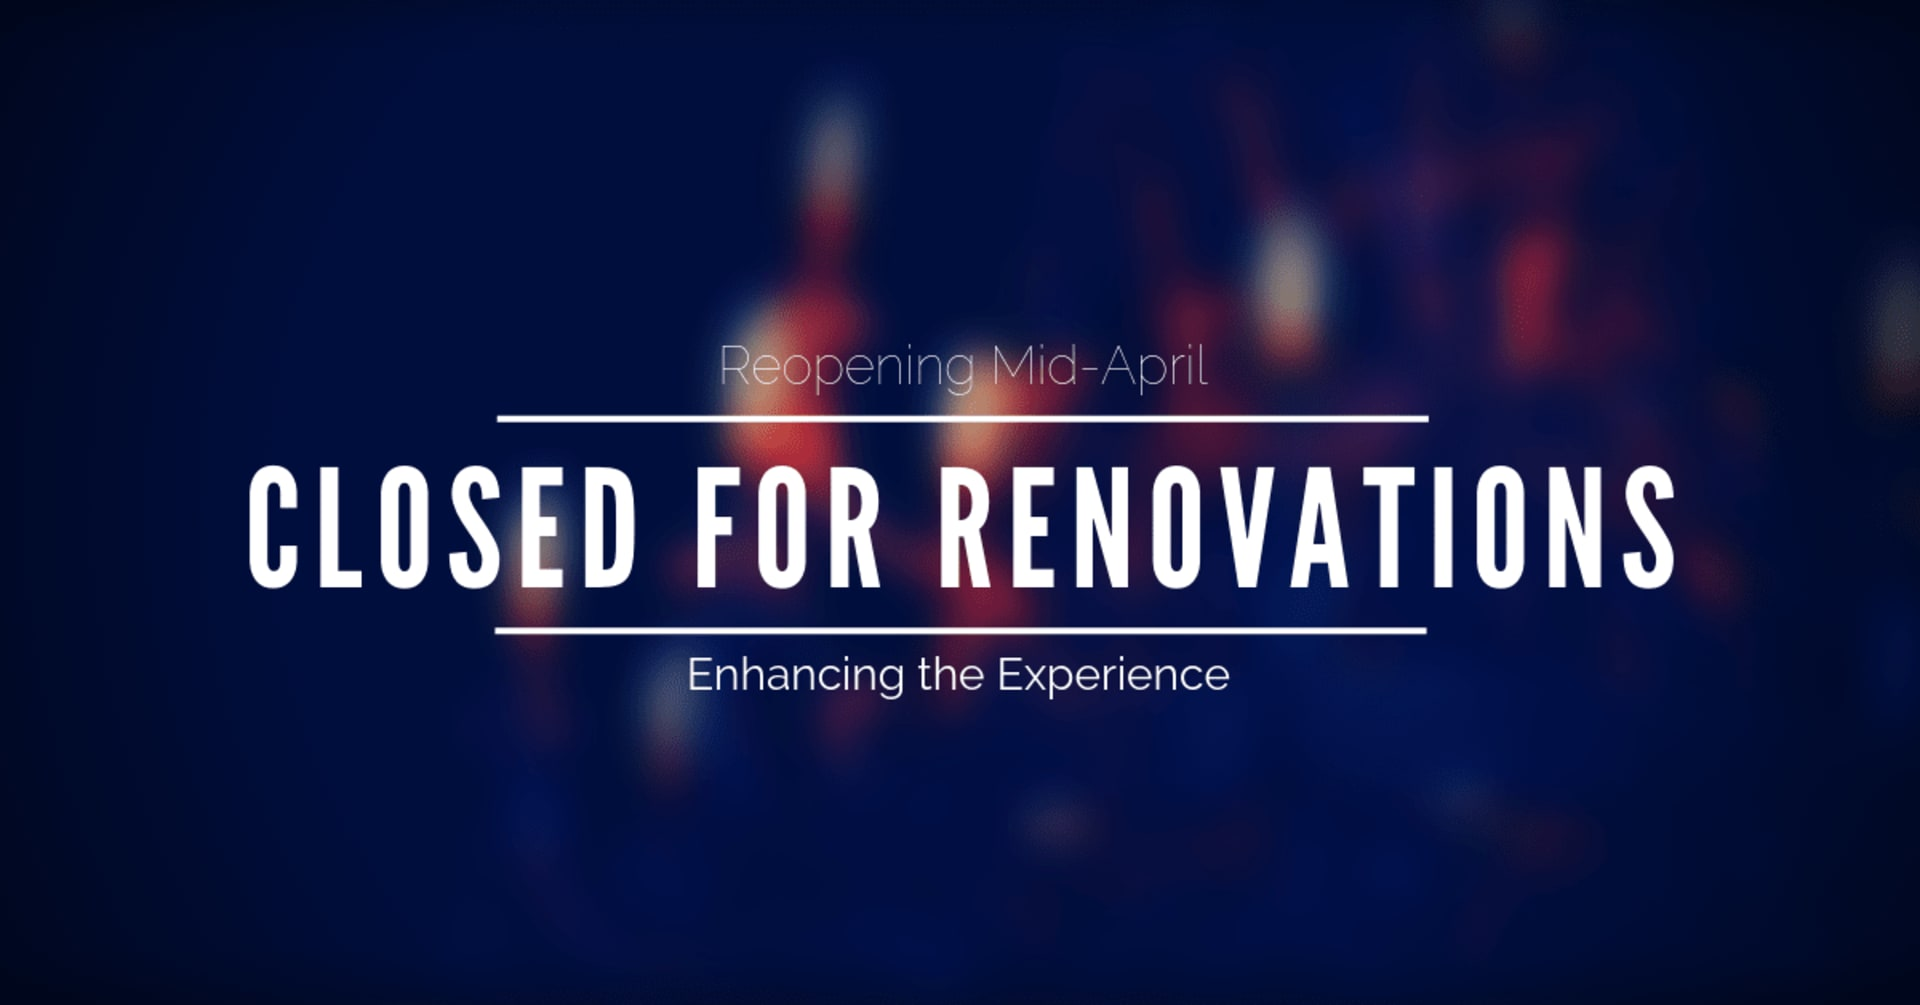 Closed for Renovations, re-opening mid-April